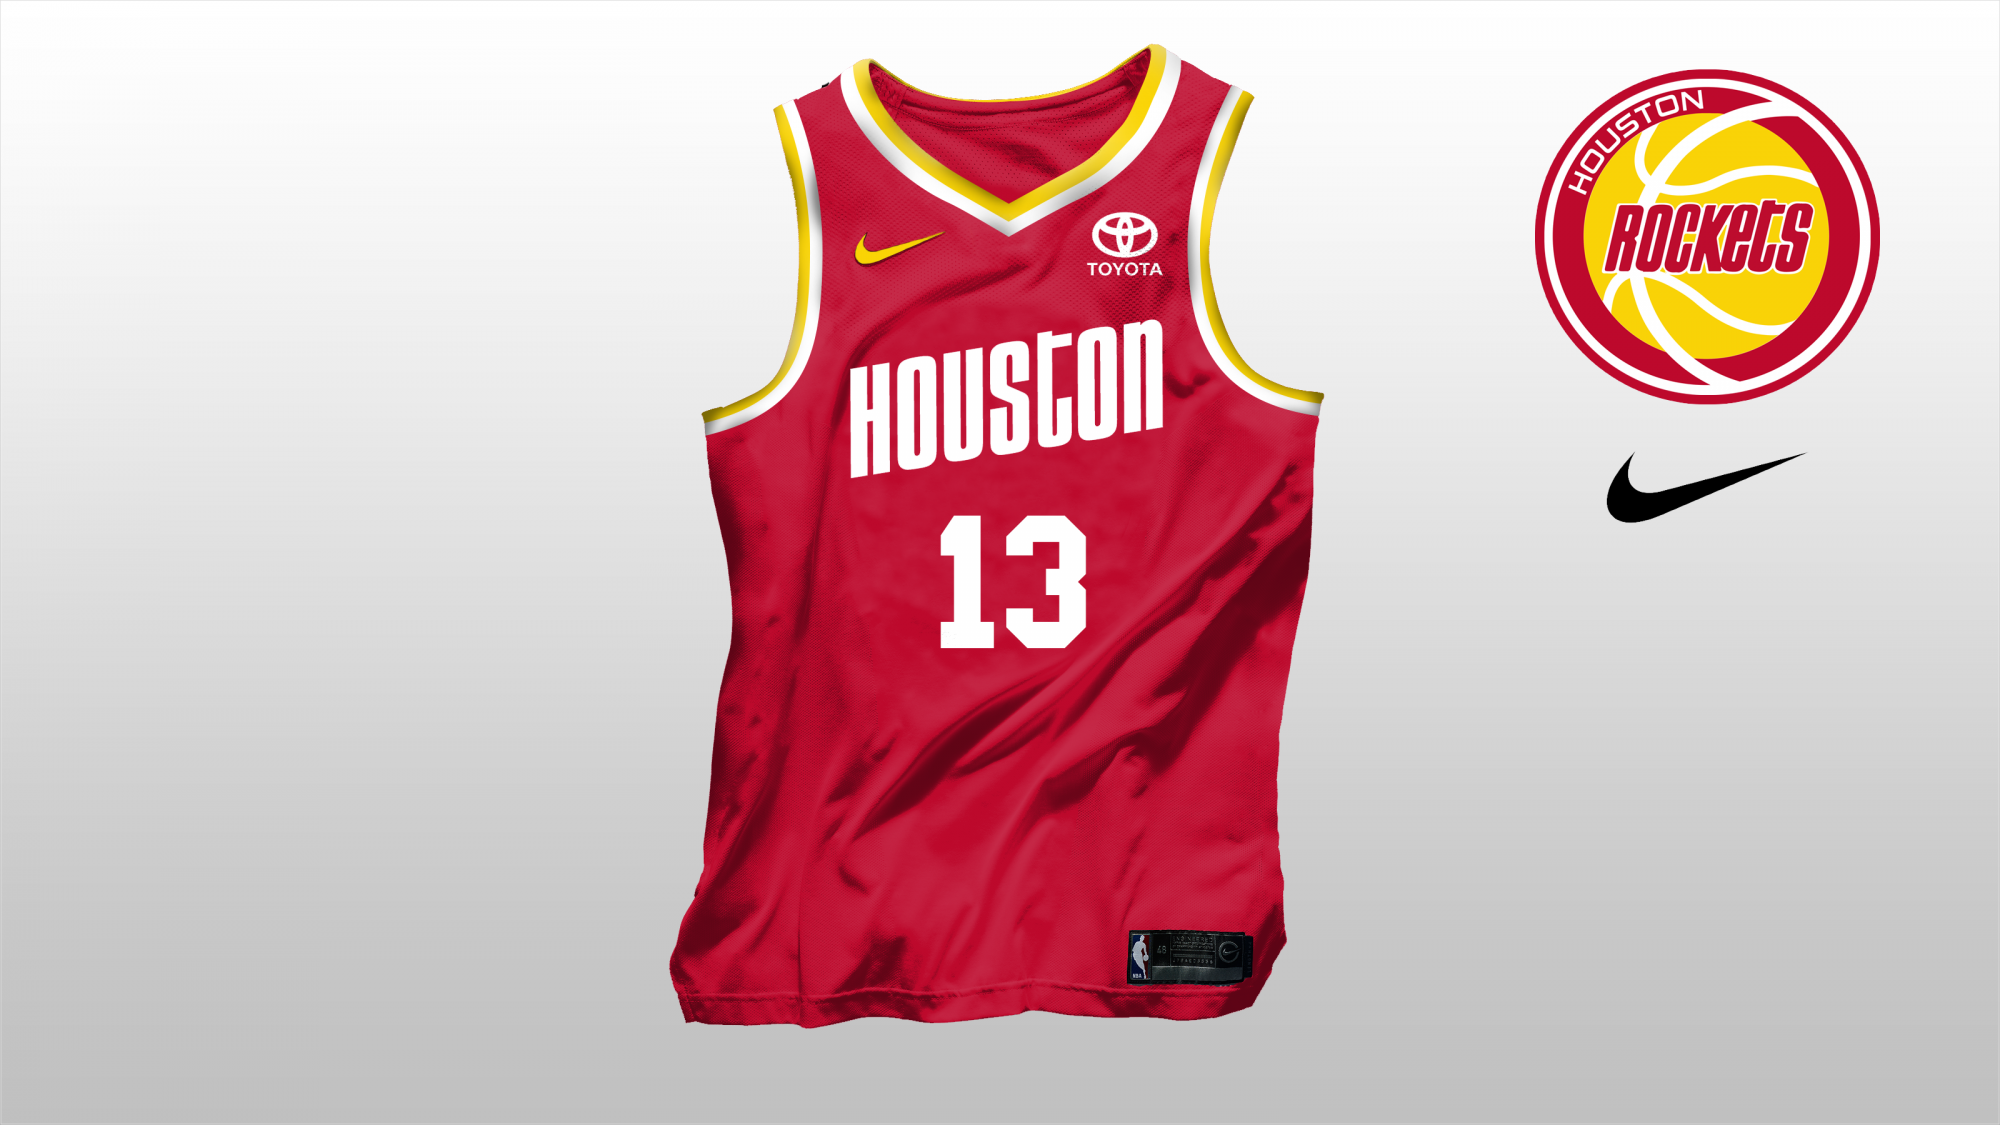 b2ede20c78 Houston Rockets Bring back the glory. - Concepts - Chris Creamer's ...